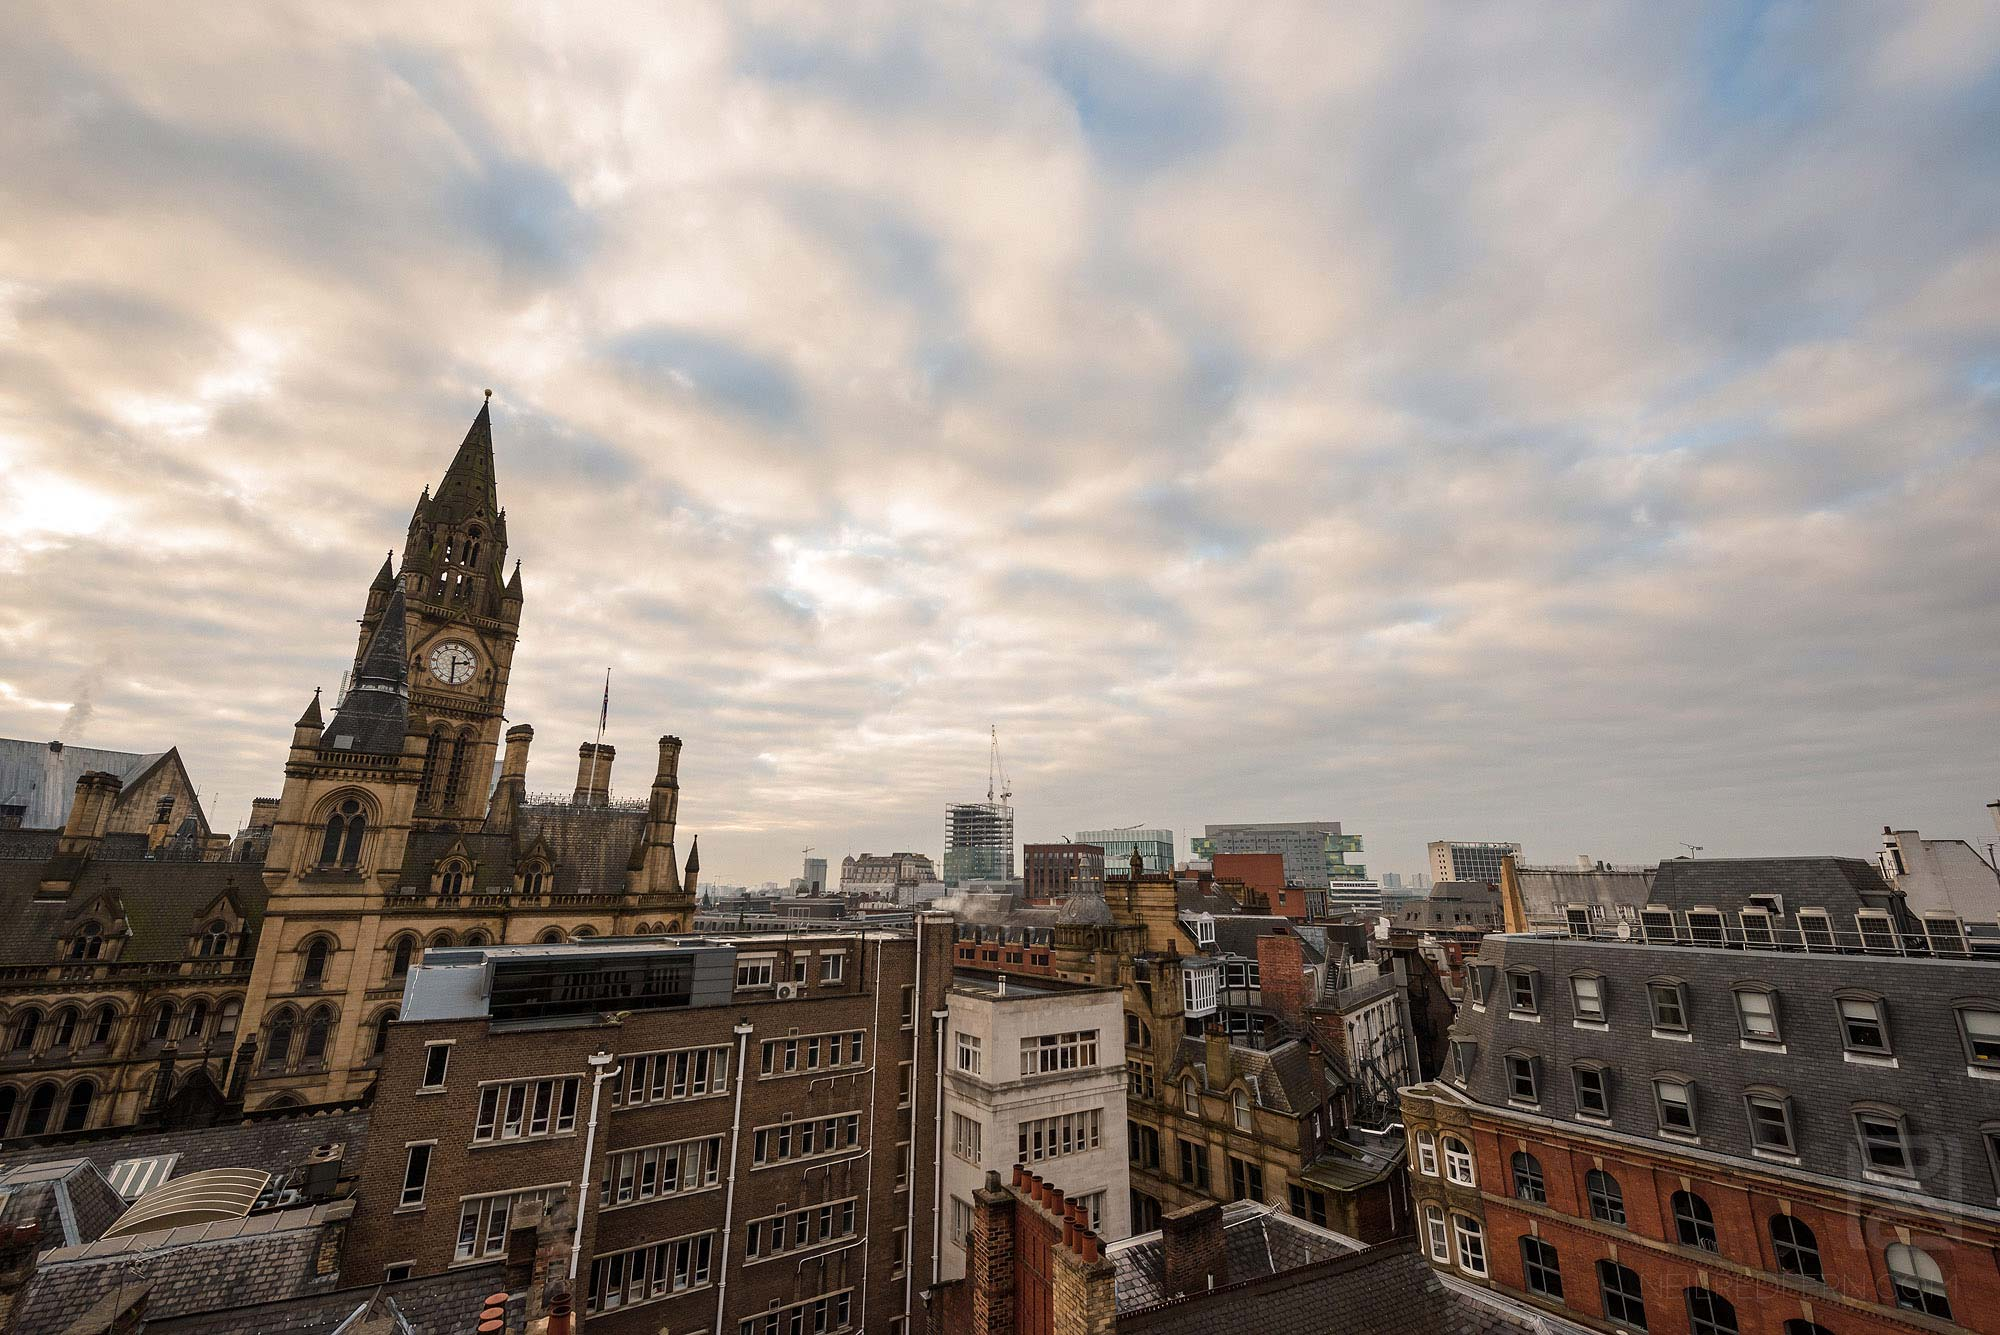 wide angle landscape photograph of Manchester Town Hall